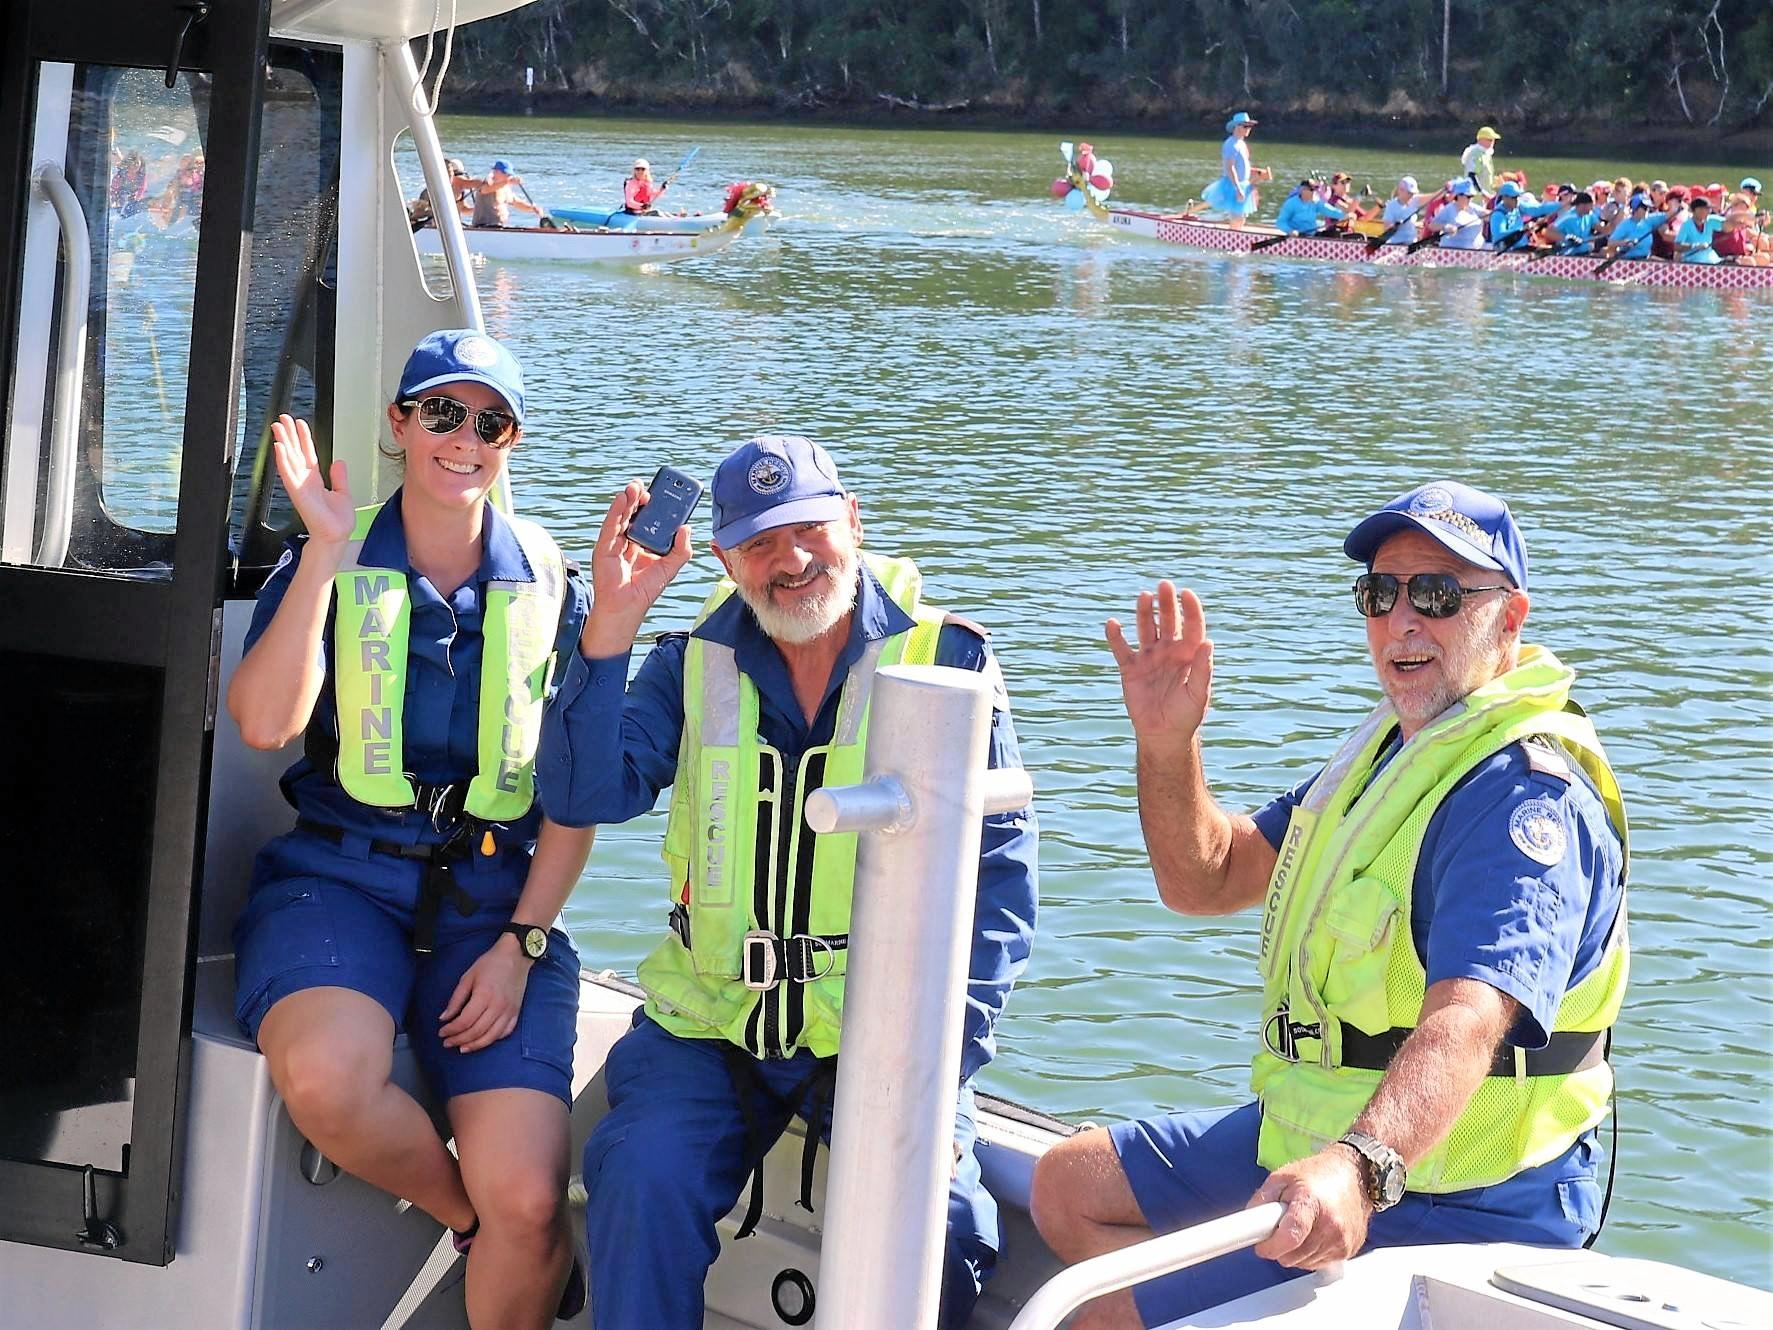 HELPING HAND: Ensuring safety at the annual Mullum to Brunswick Paddle race are Courtney Greenslade and Gary Pick along with skipper Jan Trueman.